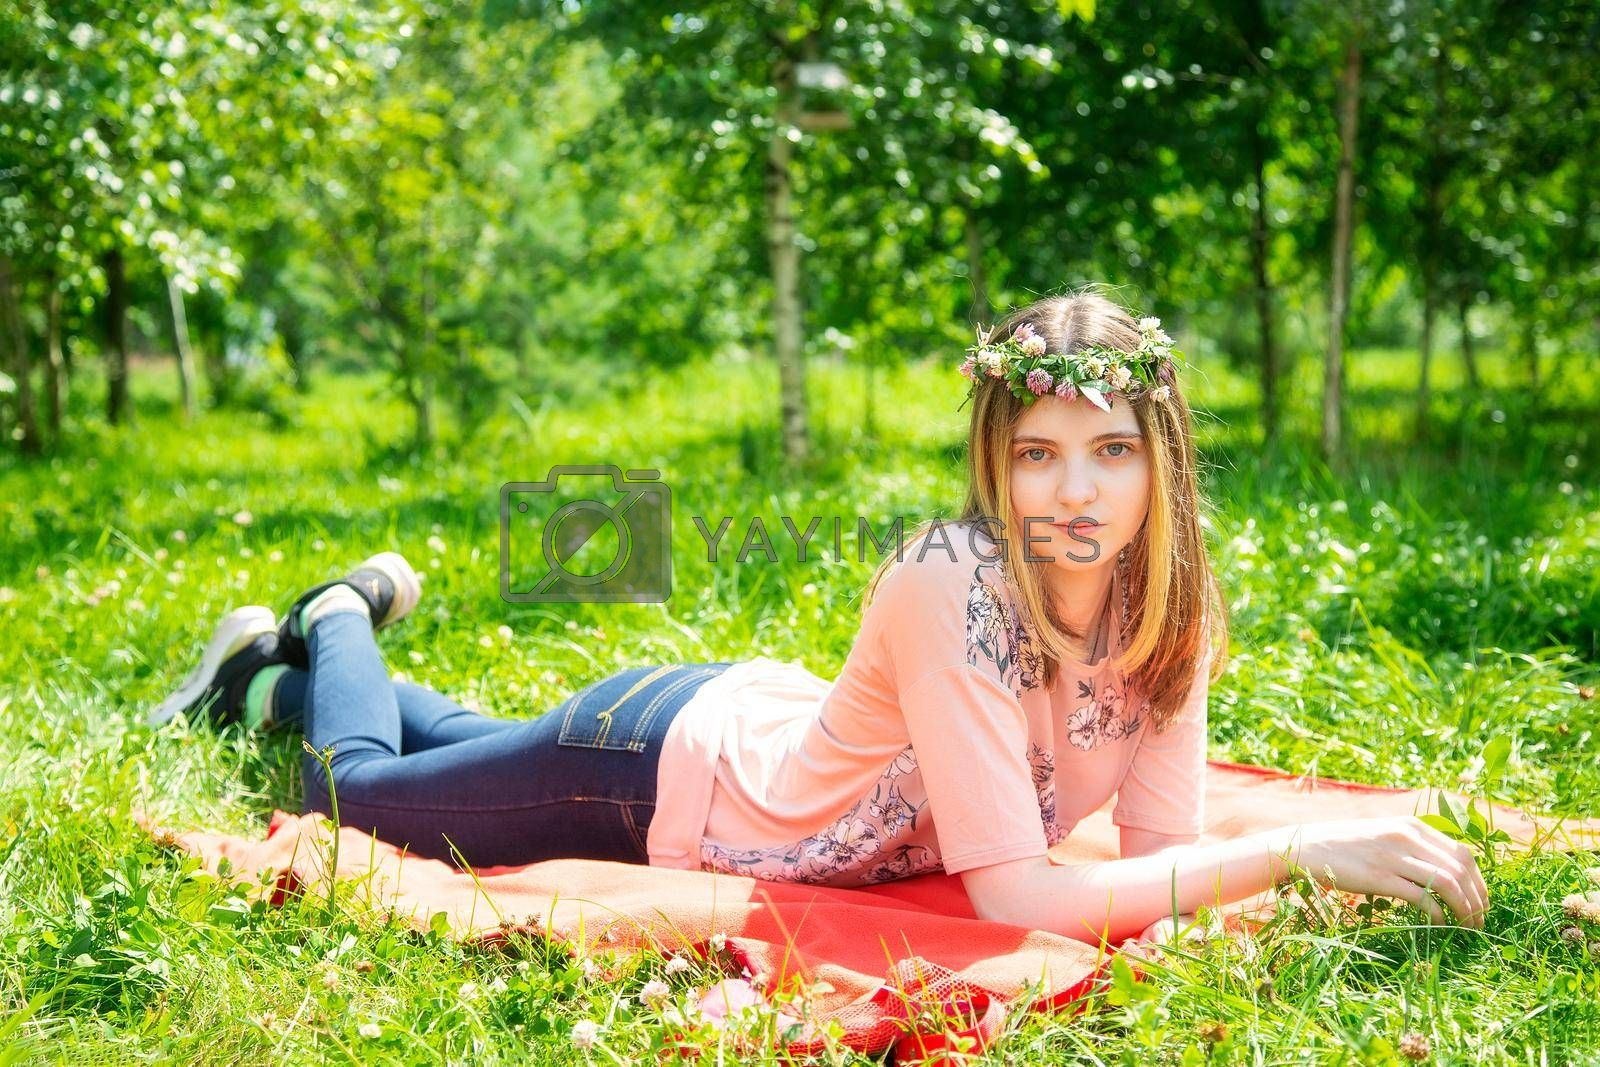 Young girl 20 years old Caucasian appearance smiling looking at the camera while lying on the lawn in the park on a summer day. The girl is dressed in a T-shirt and jeans and a wreath of wildflowers.